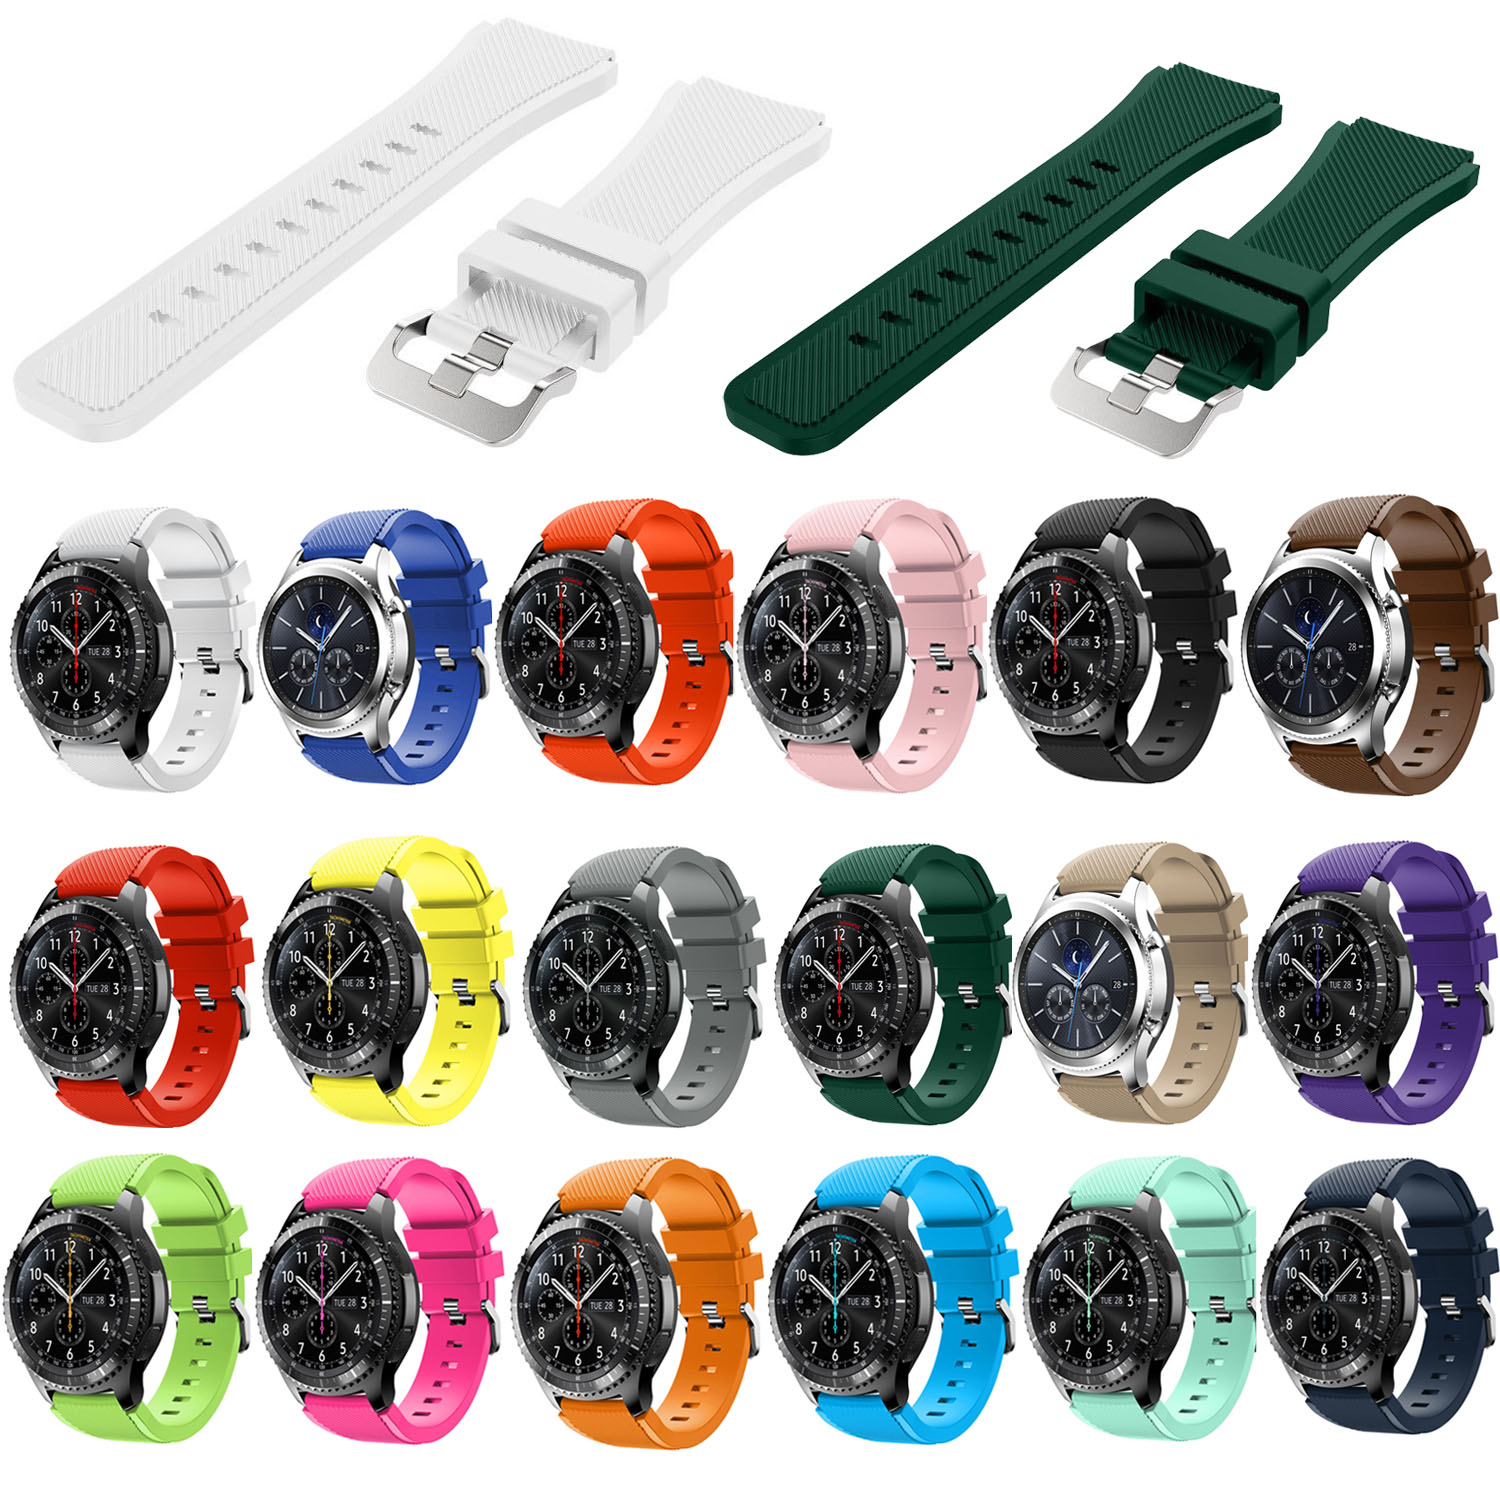 RS 18 Colors Rubber Bracelet for Samsung Gear S3 Frontier Silicone Watch Band for Gear S3 Classic Sports Strap 22mm Belts w PinsRS 18 Colors Rubber Bracelet for Samsung Gear S3 Frontier Silicone Watch Band for Gear S3 Classic Sports Strap 22mm Belts w Pins